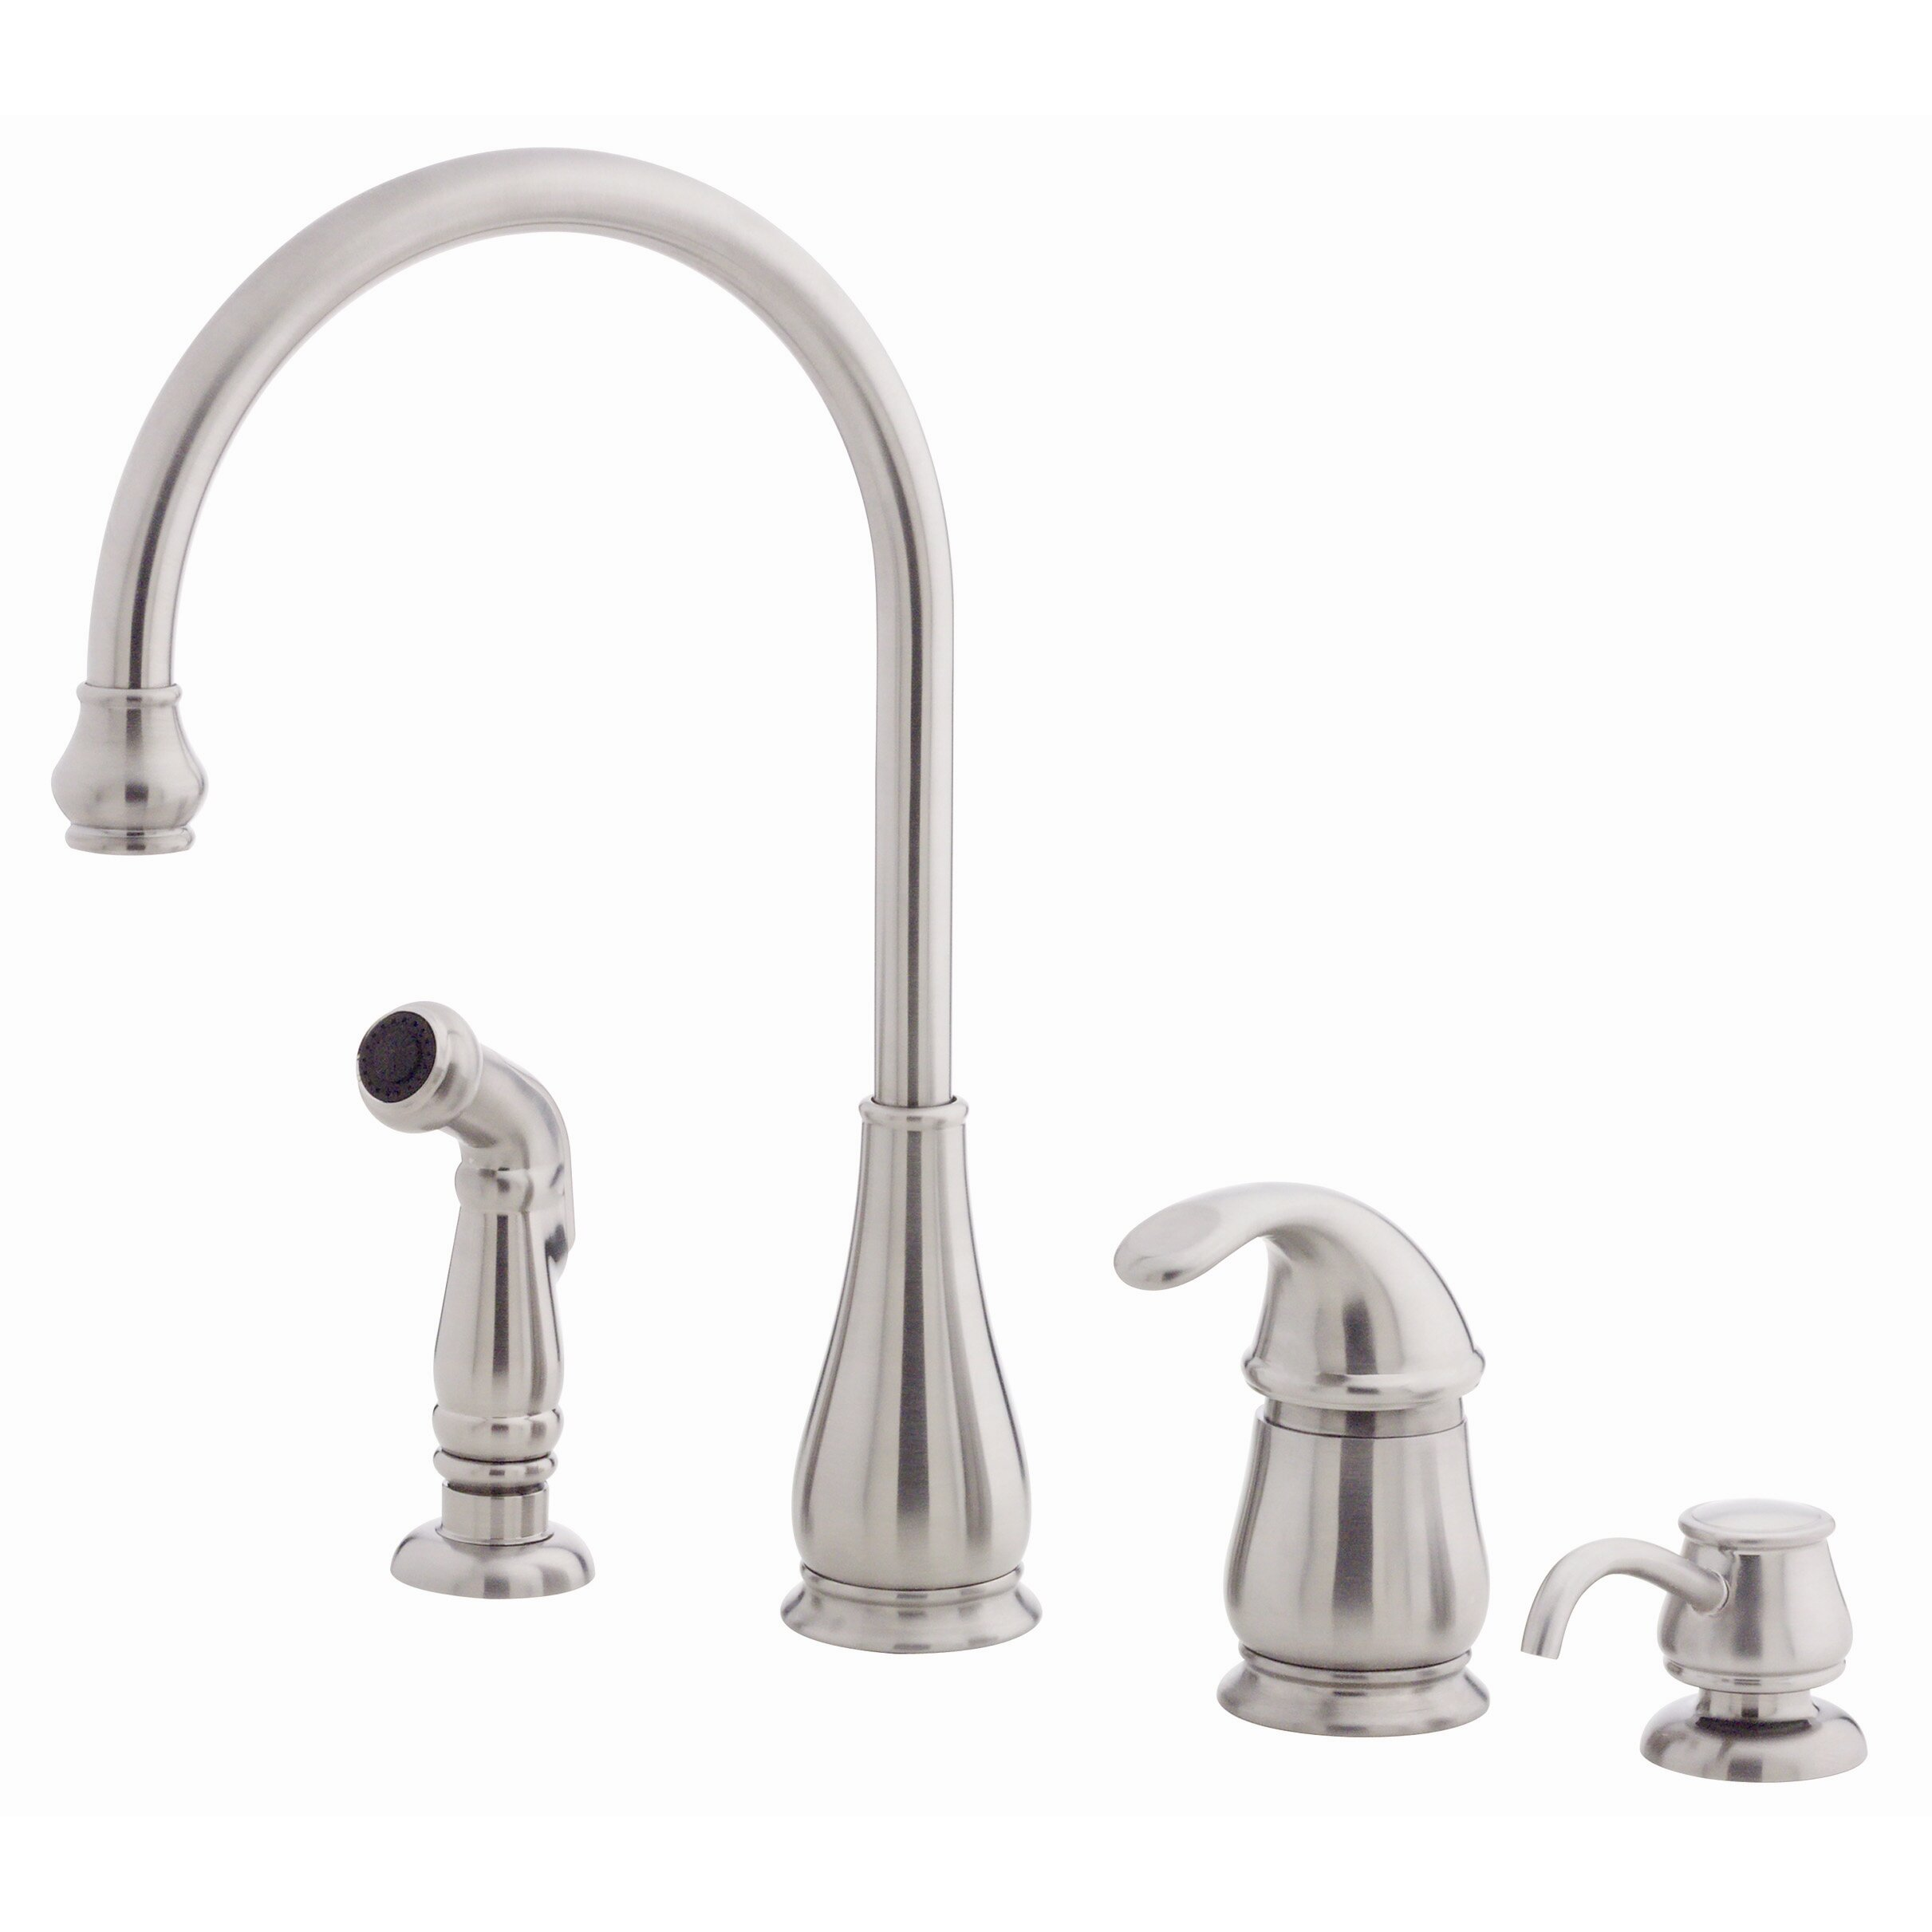 Treviso Single Handle Deck Mounted Kitchen Faucet With Soap Lotion Dispenser And Side Spray